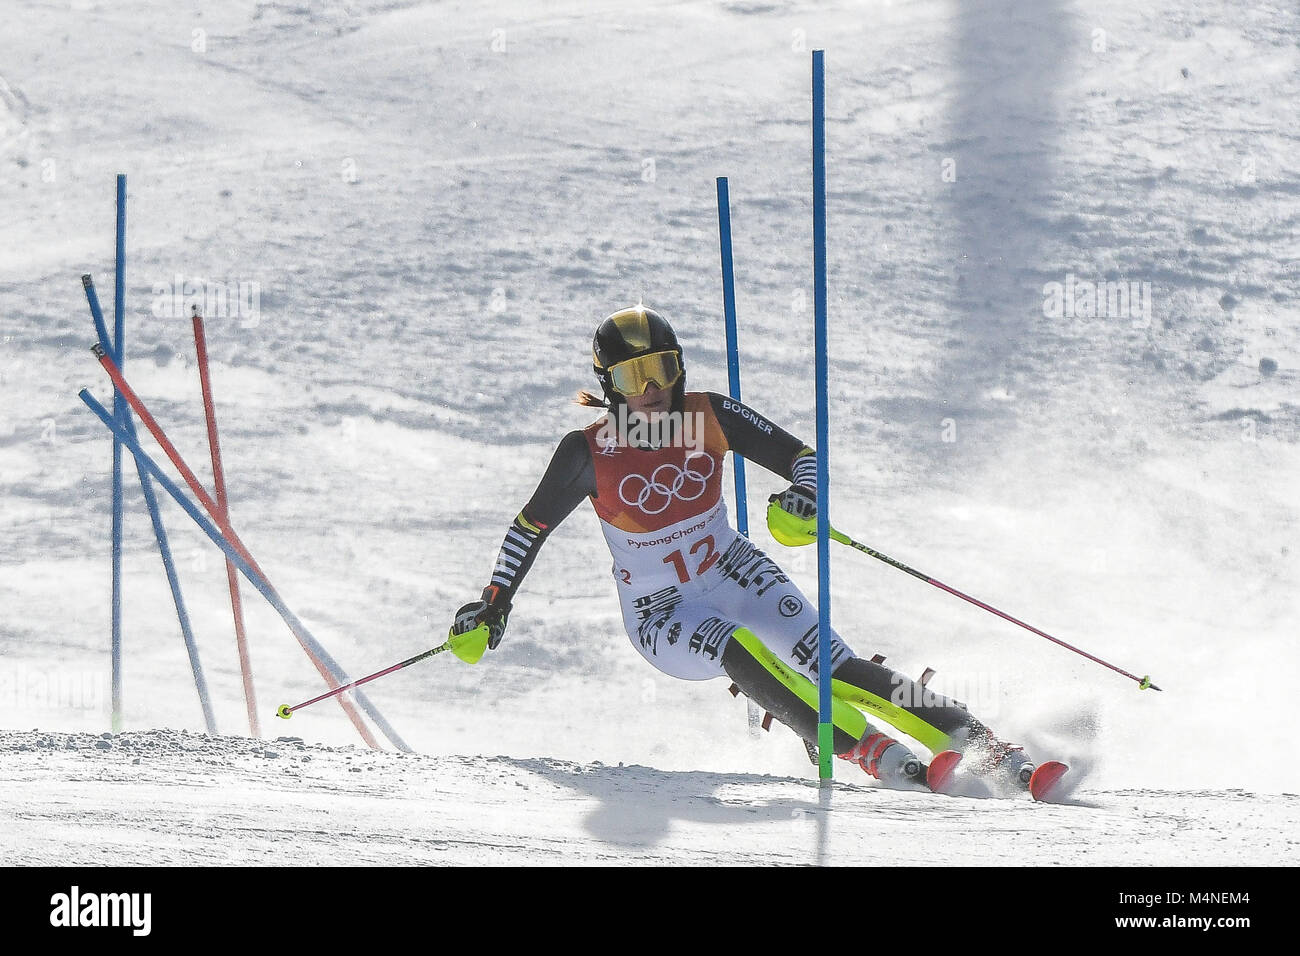 February 16, 2018: Christina Geiger of Germany competing in womens final in slalom at Yongpyong Alpine - Stock Image